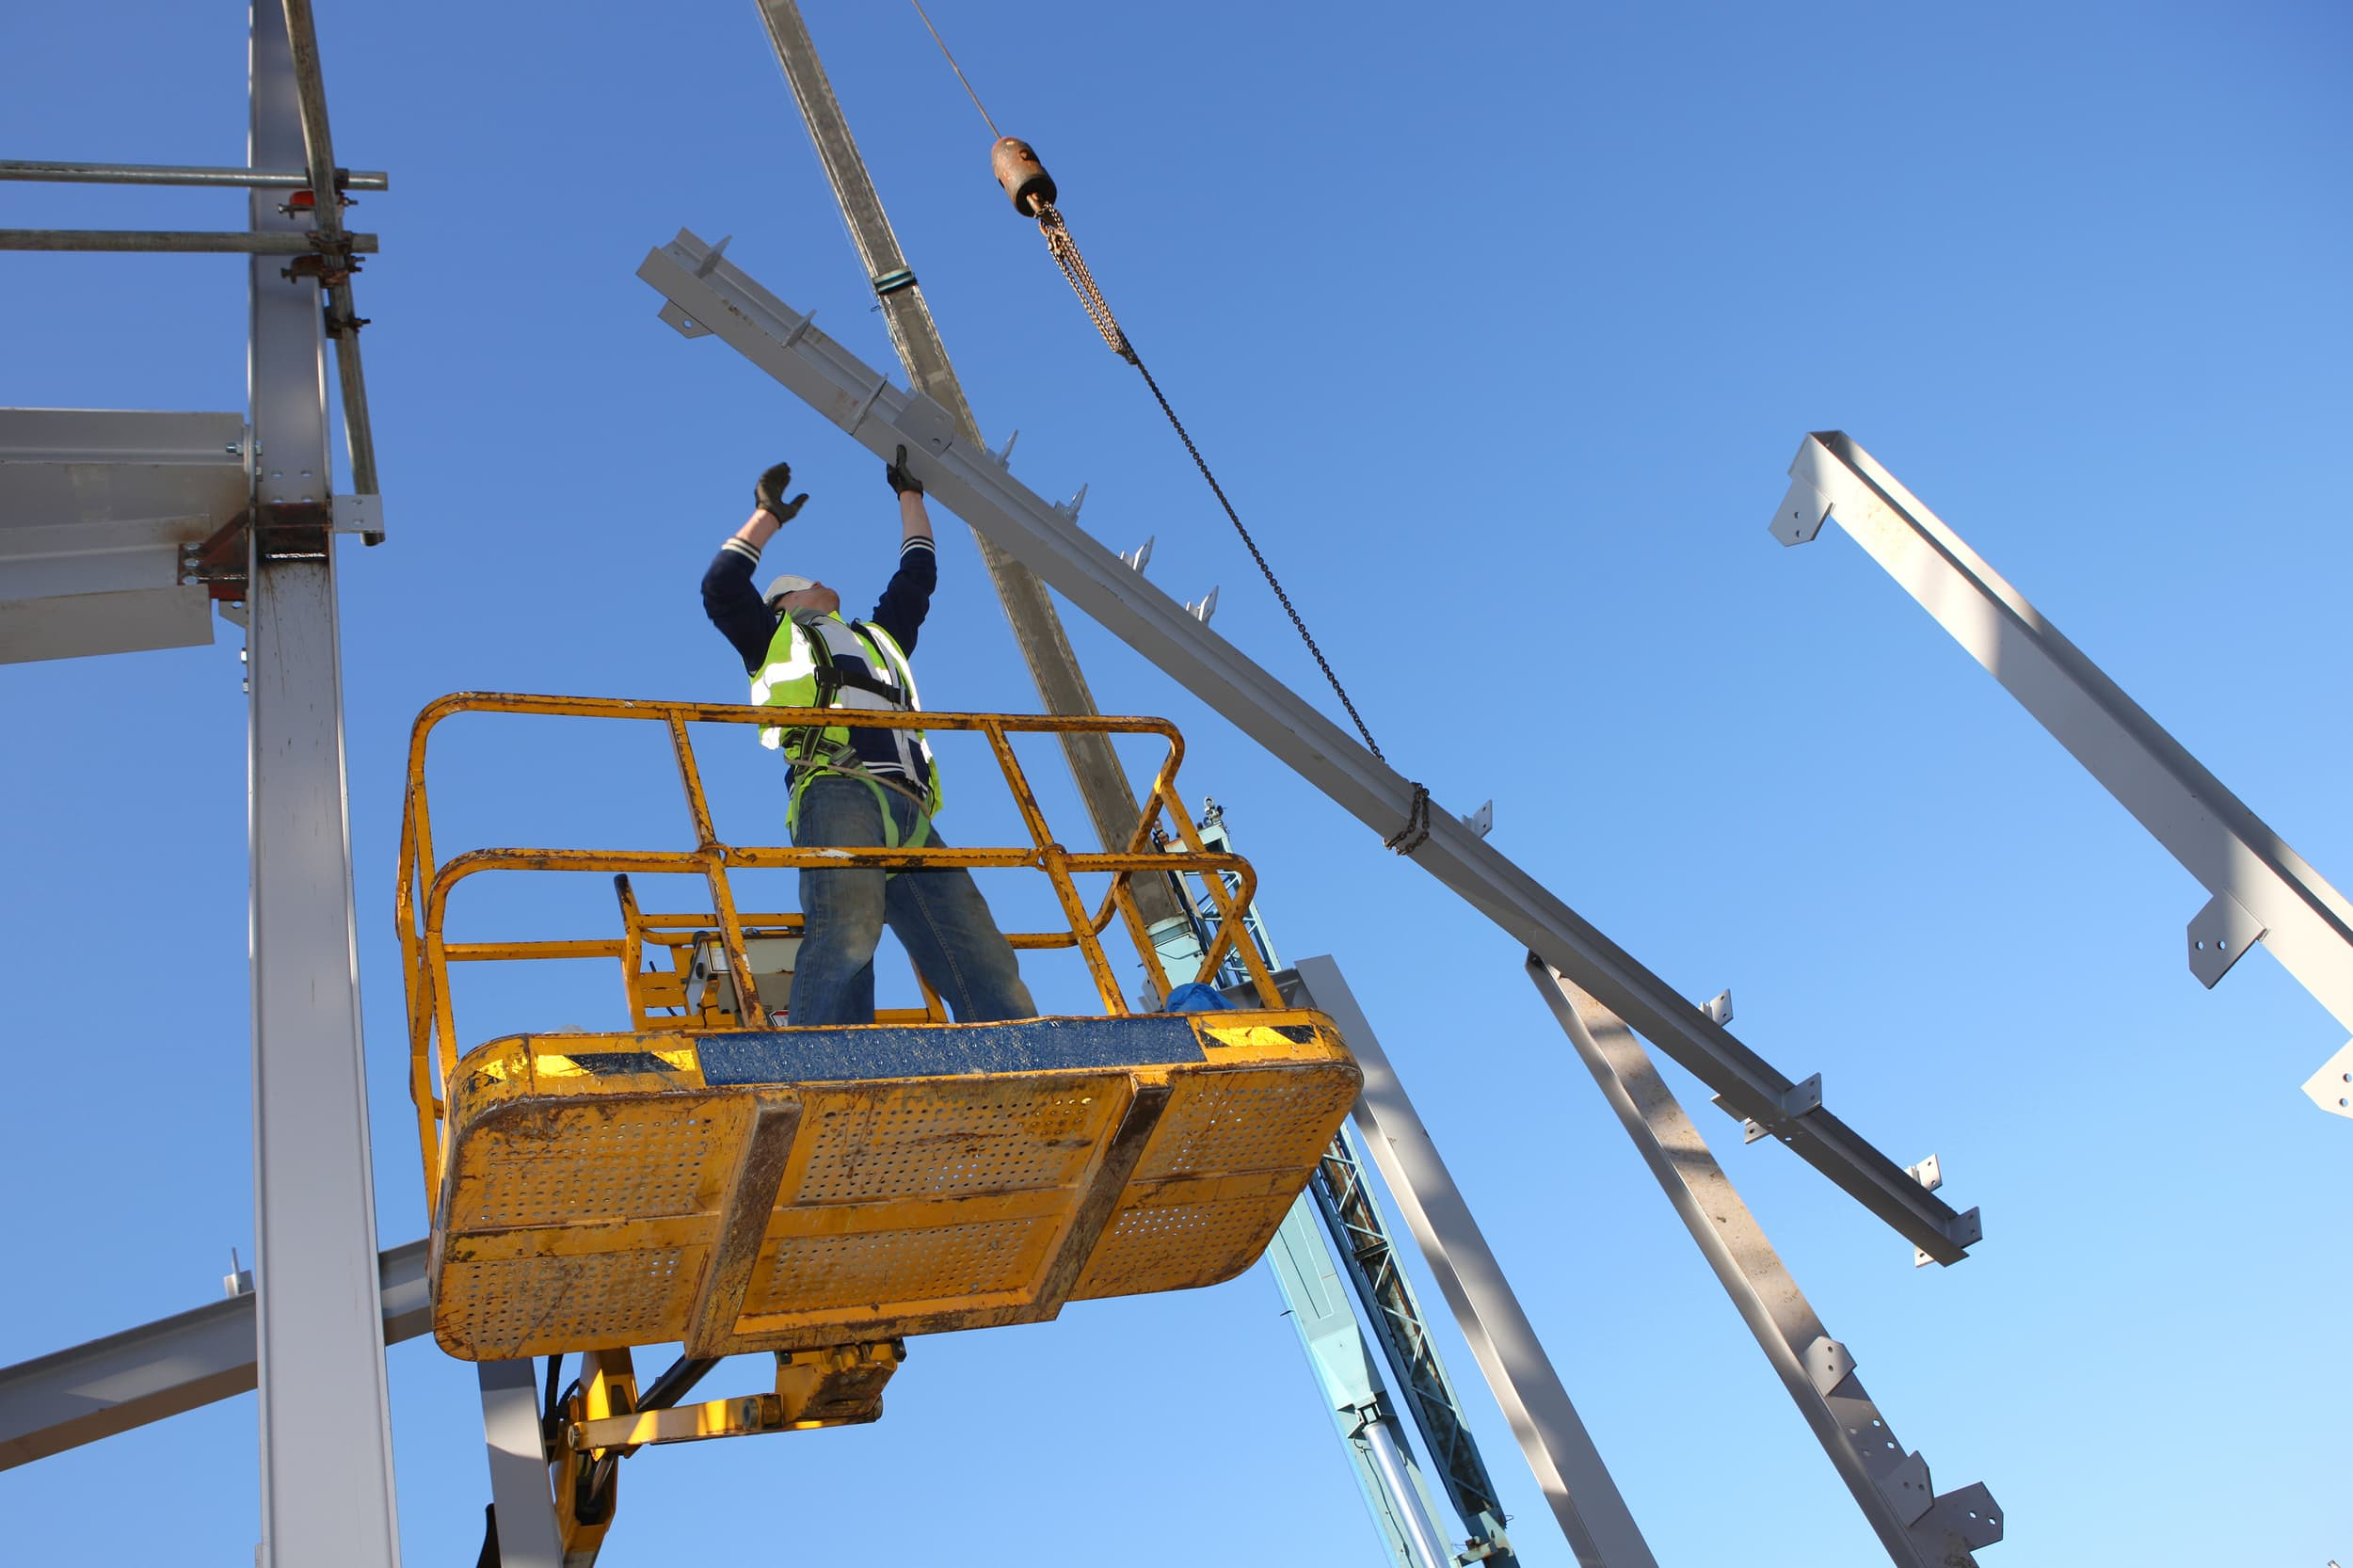 Compliance Training Online Construction Steel Erection Safety course